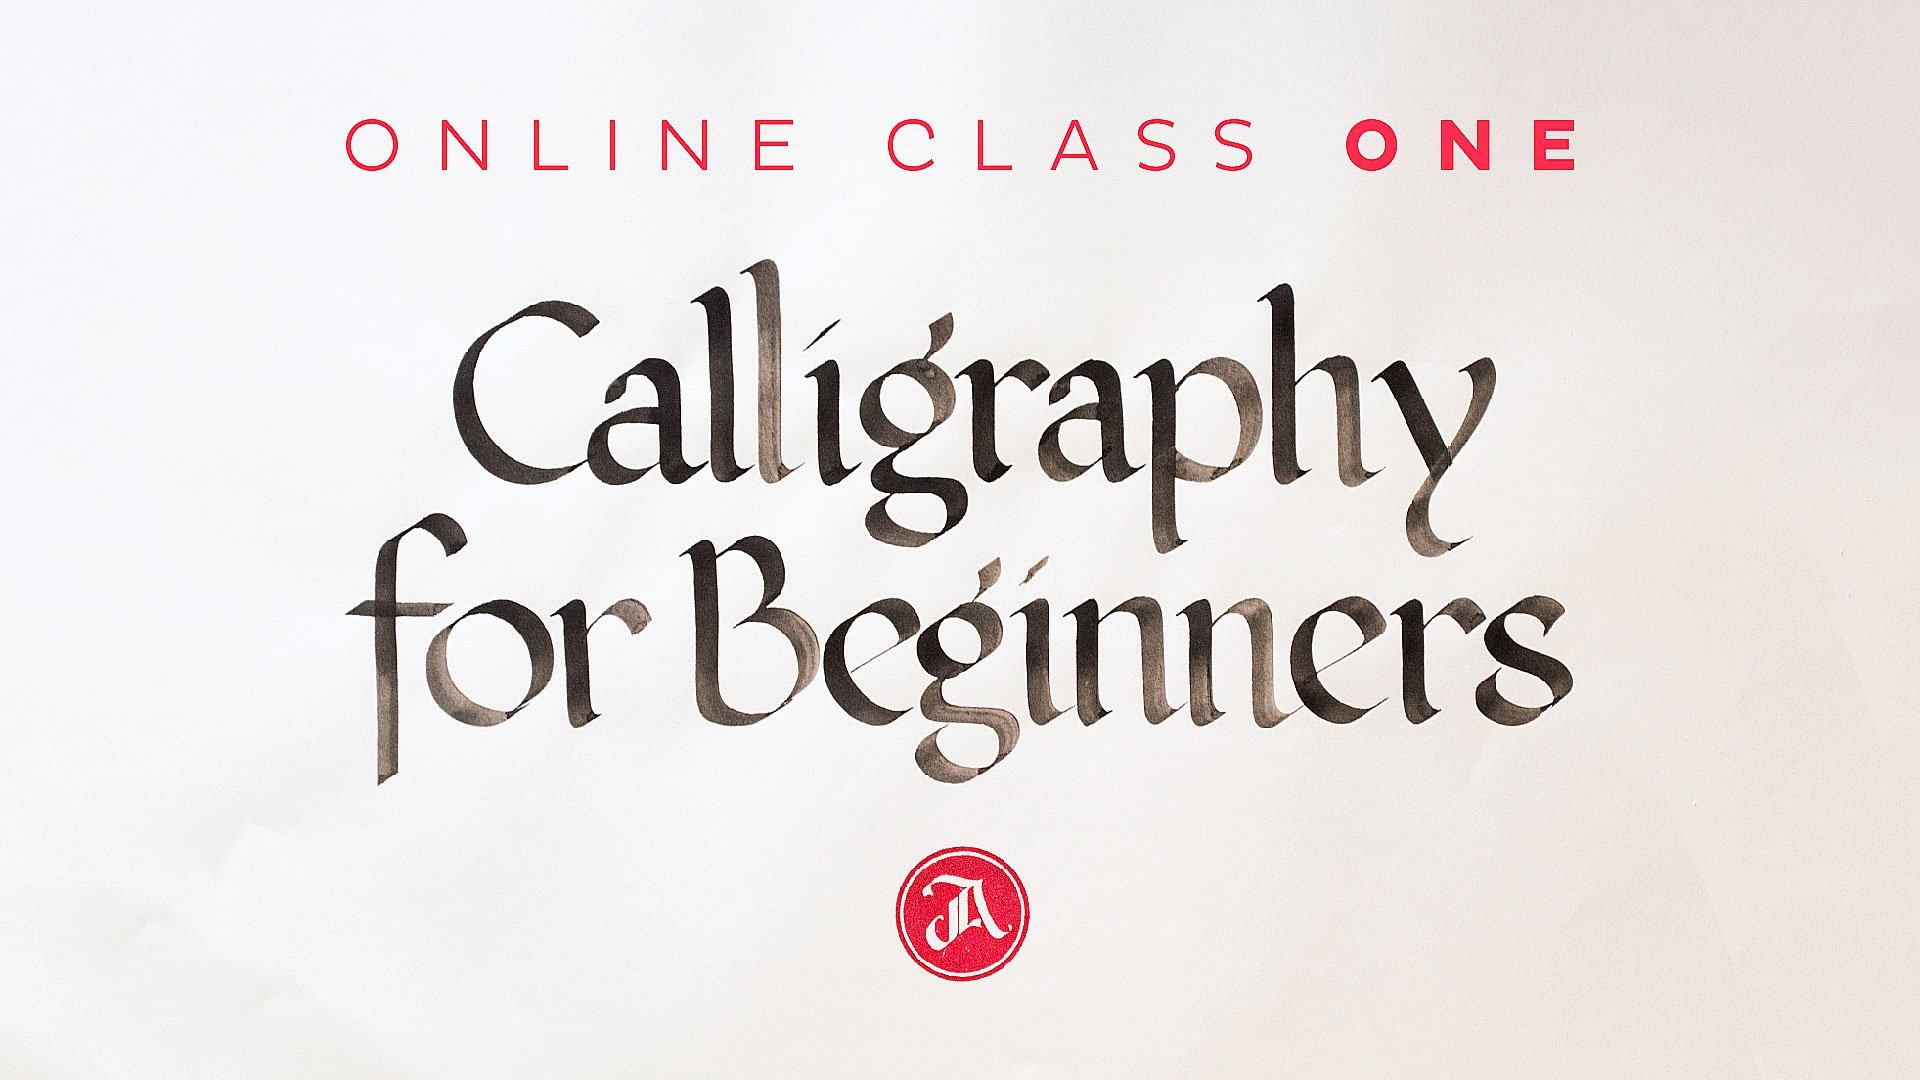 Calligraphy Online Calligraphy For Beginners 1 The Foundational Styles Of